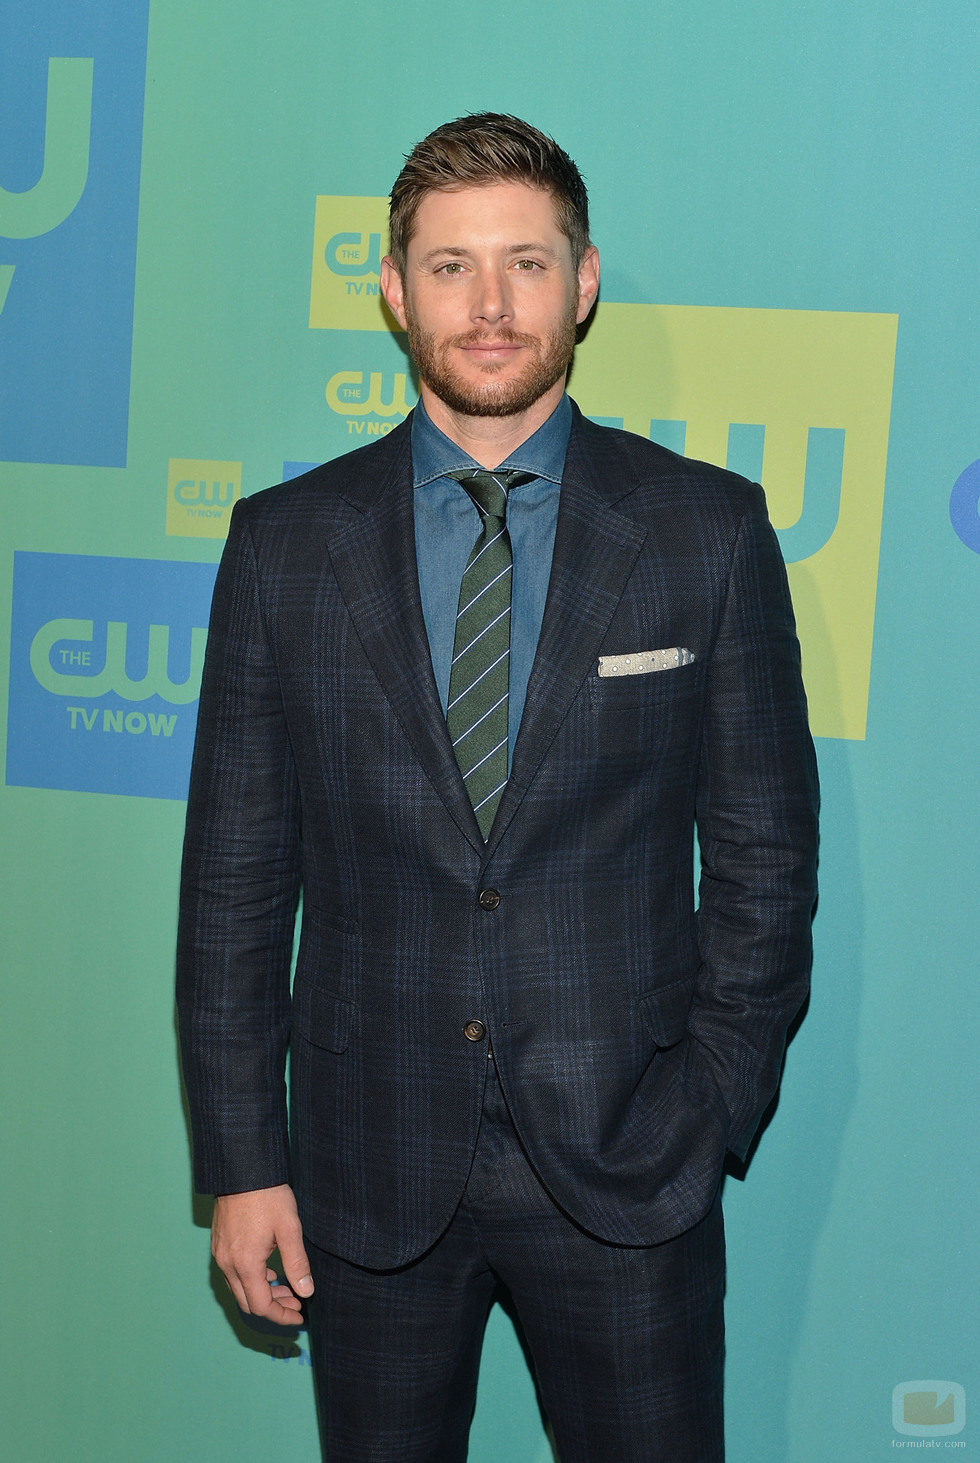 Jensen Ackles ('Supernatural') en los Upfronts 2014 de The CW